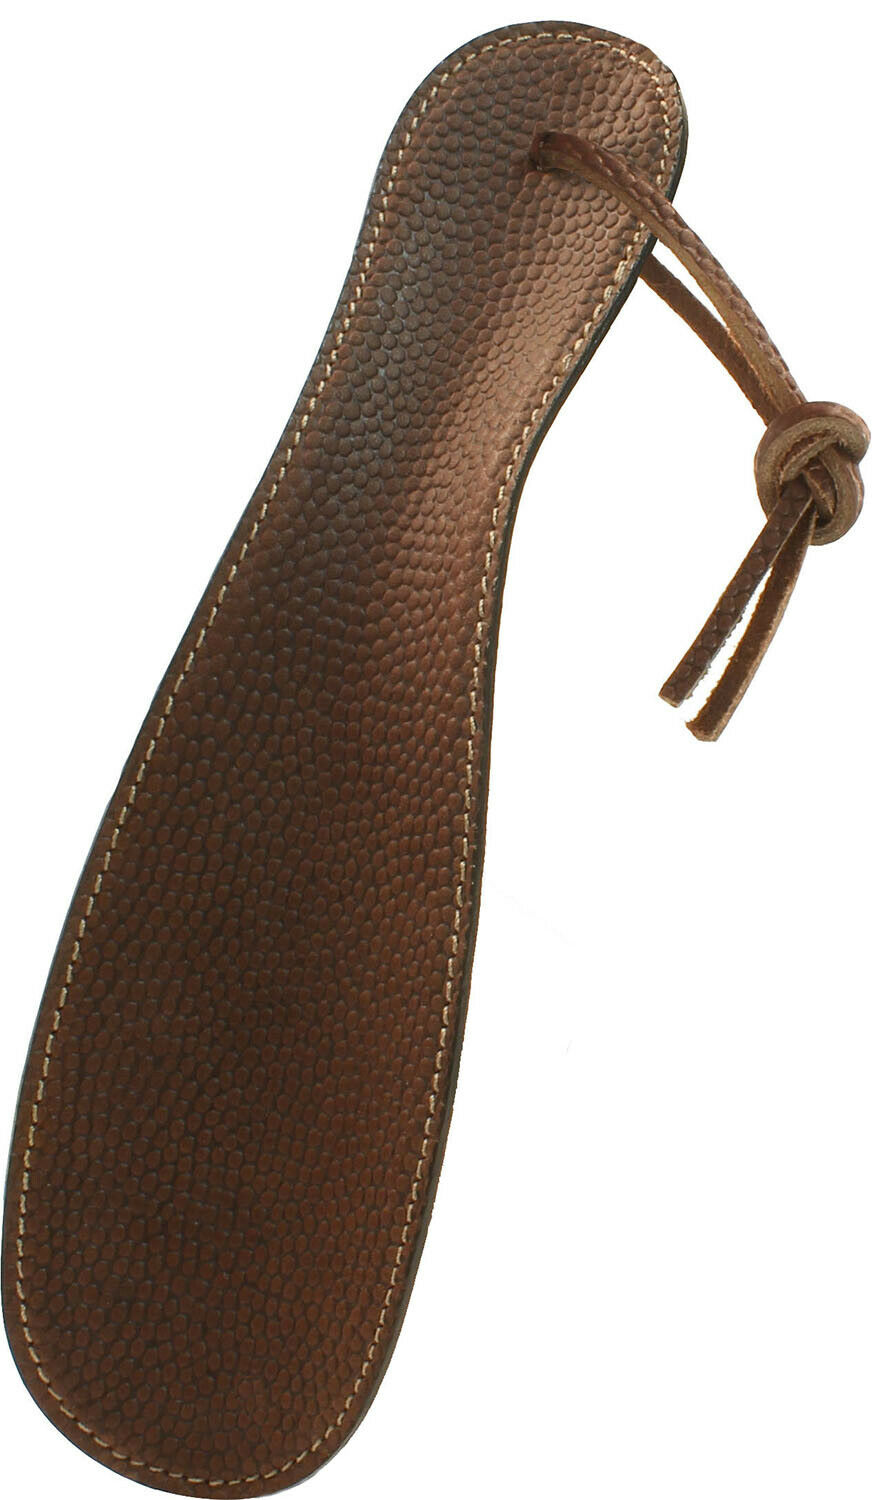 7.5 Inch Genuine Football Leather Shoehorn - 100% Made in th